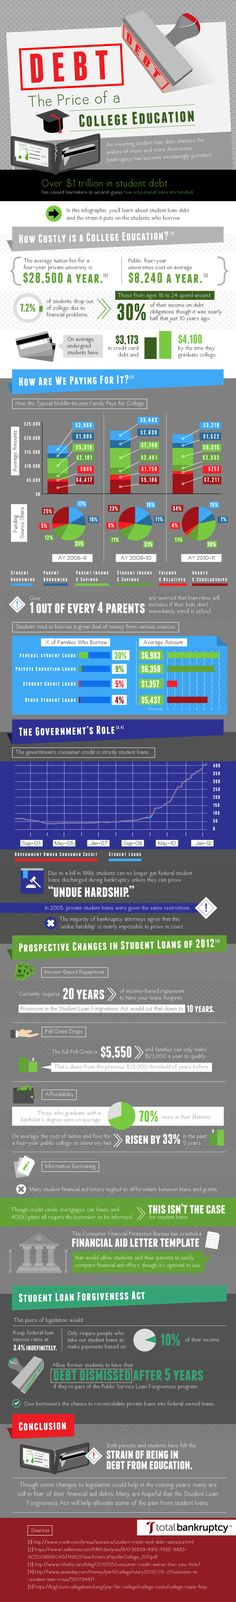 Debt: The Price of a College Education [INFOGRAPHIC]